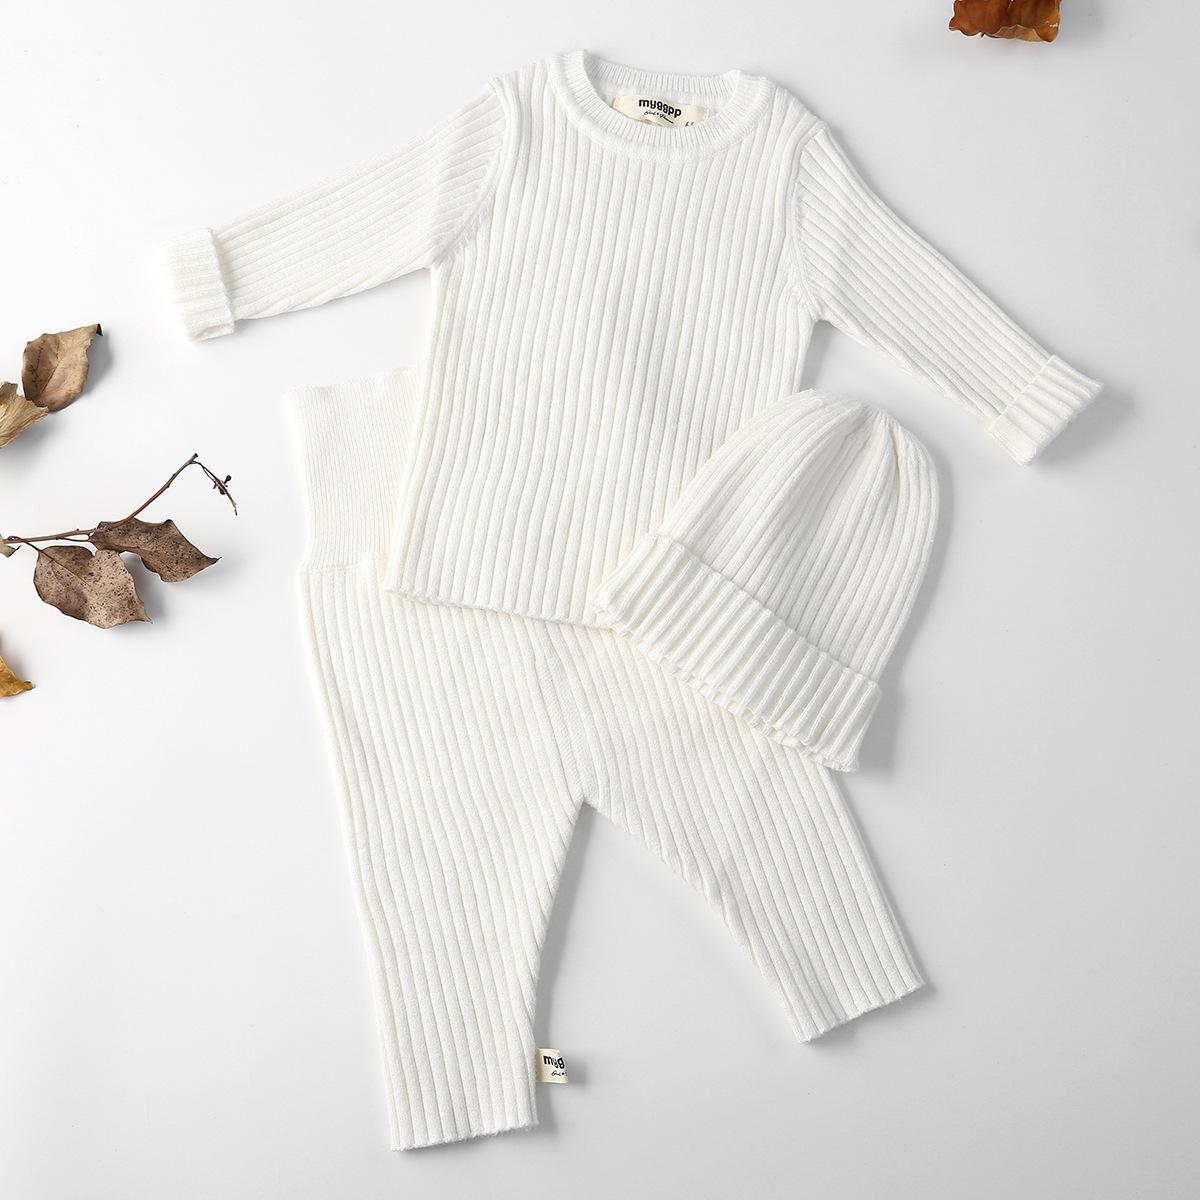 4150decac 2019 Autumn Winter Baby Girl Clothes Knit Ribbed Sweater Boys ...